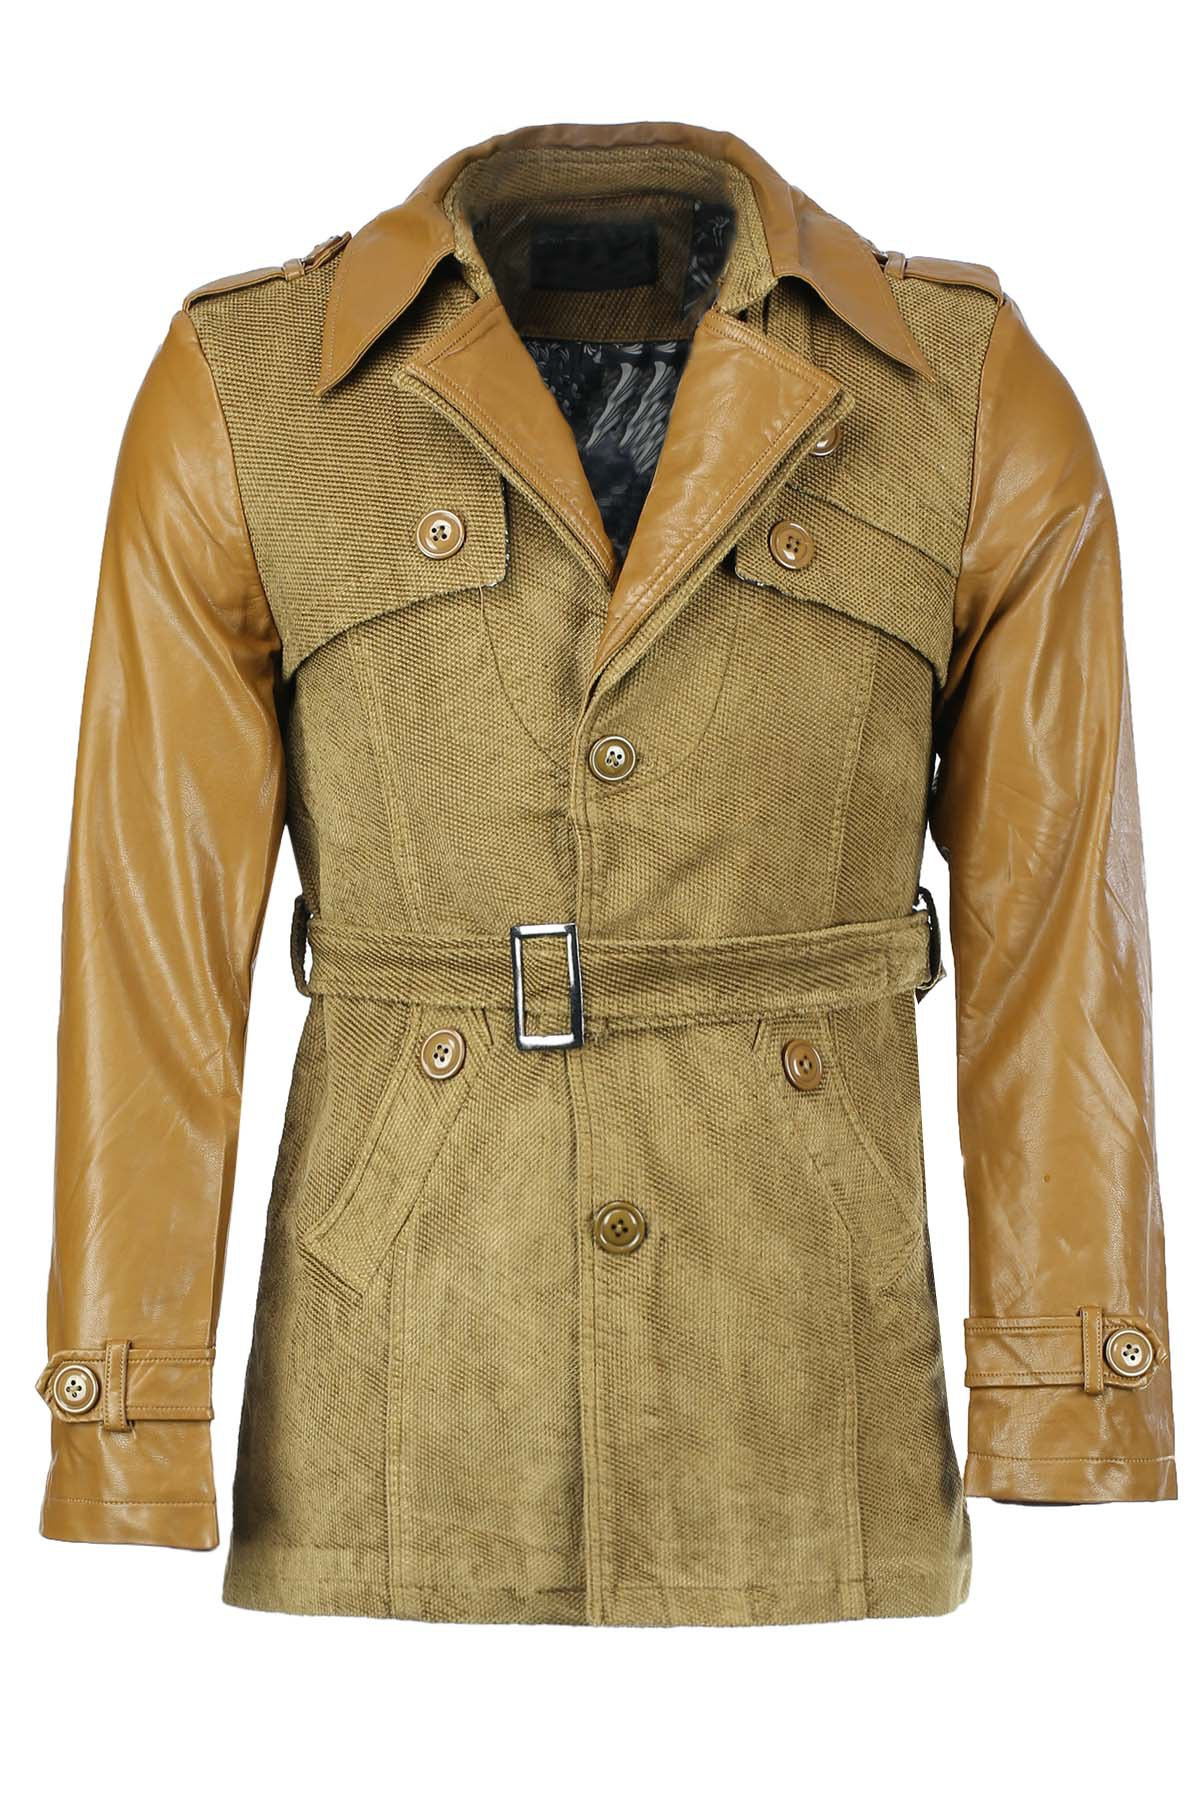 Belt Design Turn-Down Collar Solid Color PU-Leather Splicing Long Sleeve Men's Coat - KHAKI L